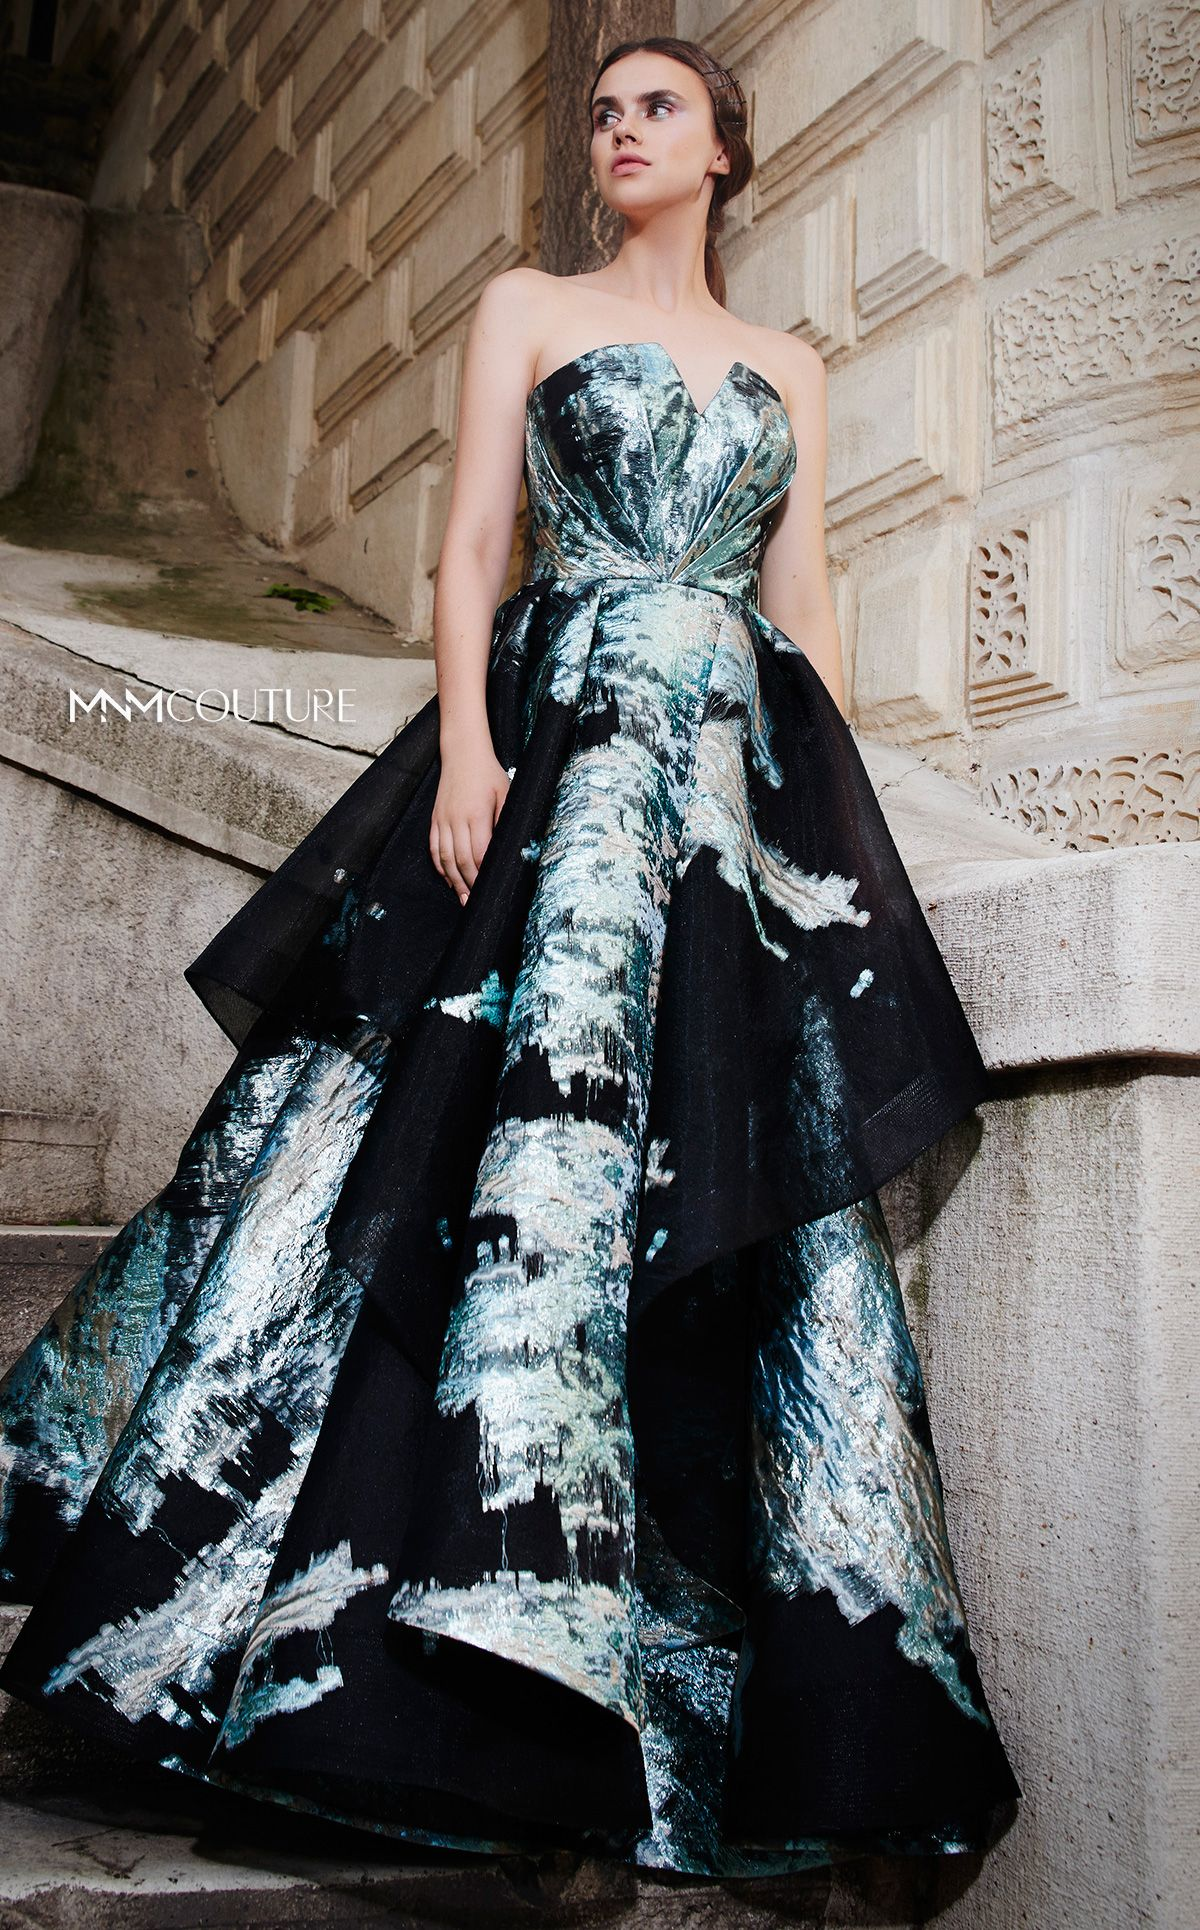 Top Marbled Prom Dress Strapless Dress Outfit Dresses Prom Outfits [ 1930 x 1200 Pixel ]